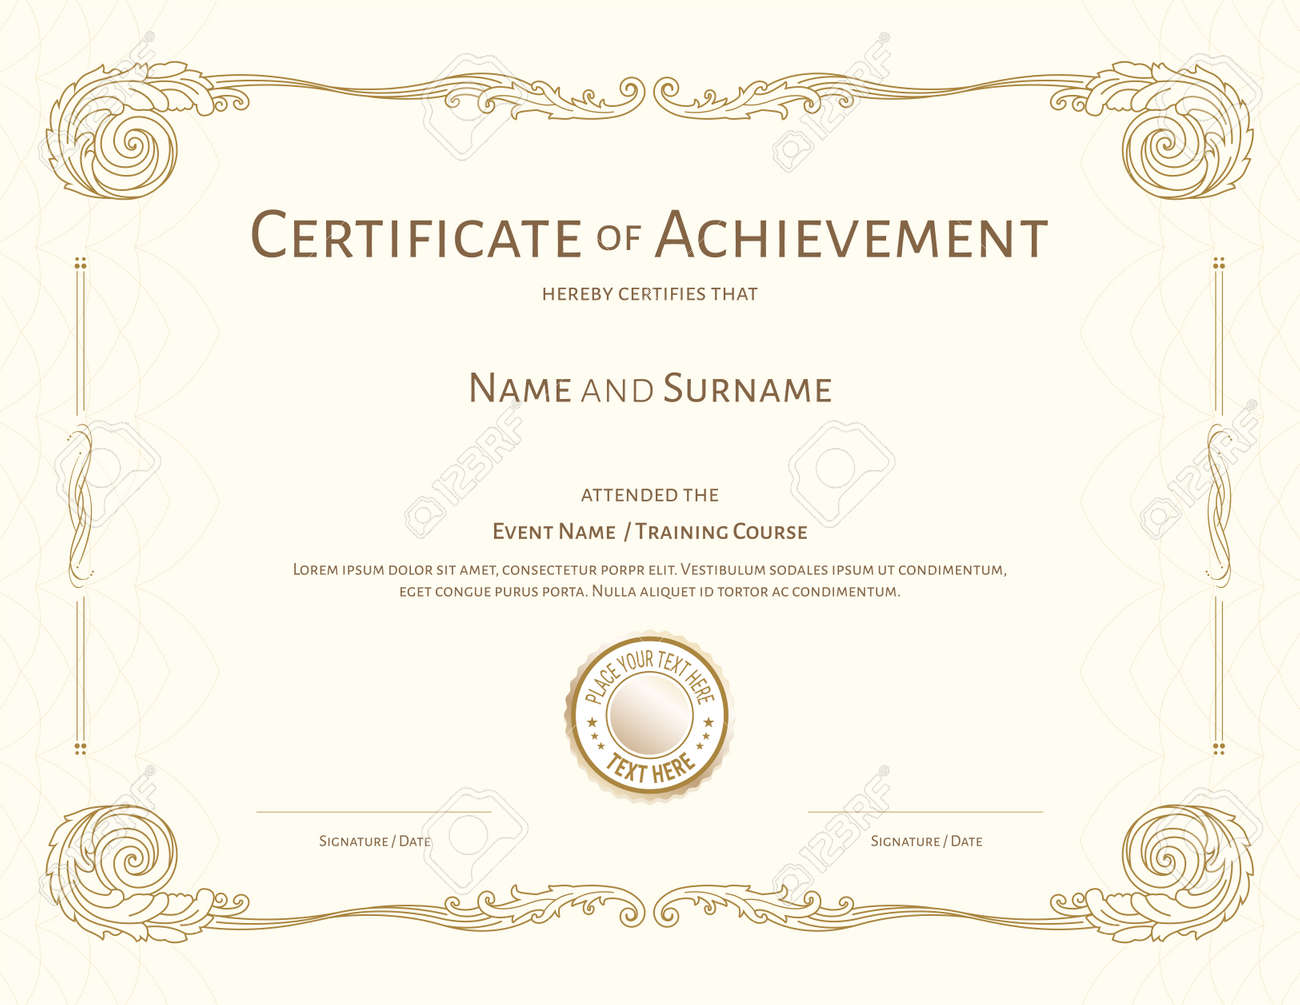 Luxury certificate template with elegant border frame, Diploma design for graduation or completion - 165443837